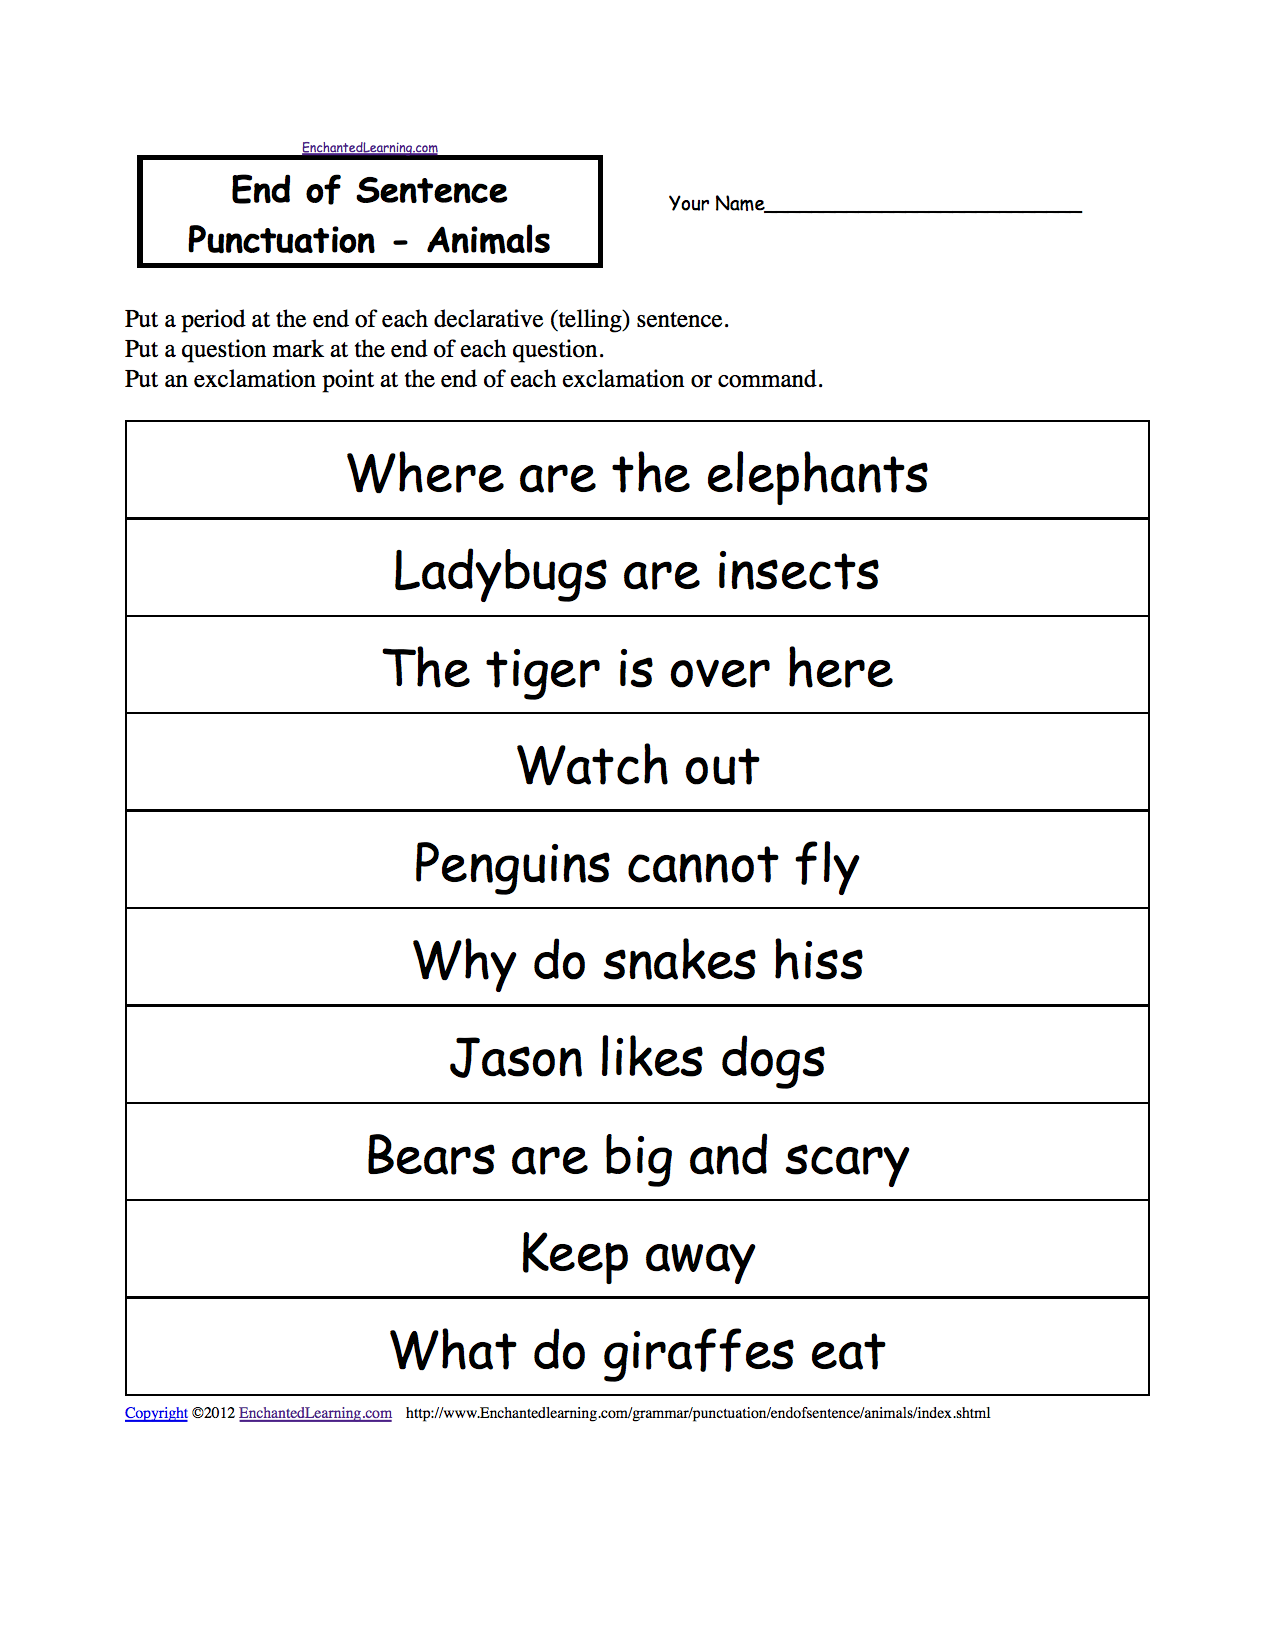 Worksheets Ending Punctuation Worksheets end of sentence punctuation printable worksheets enchantedlearning com punctuate